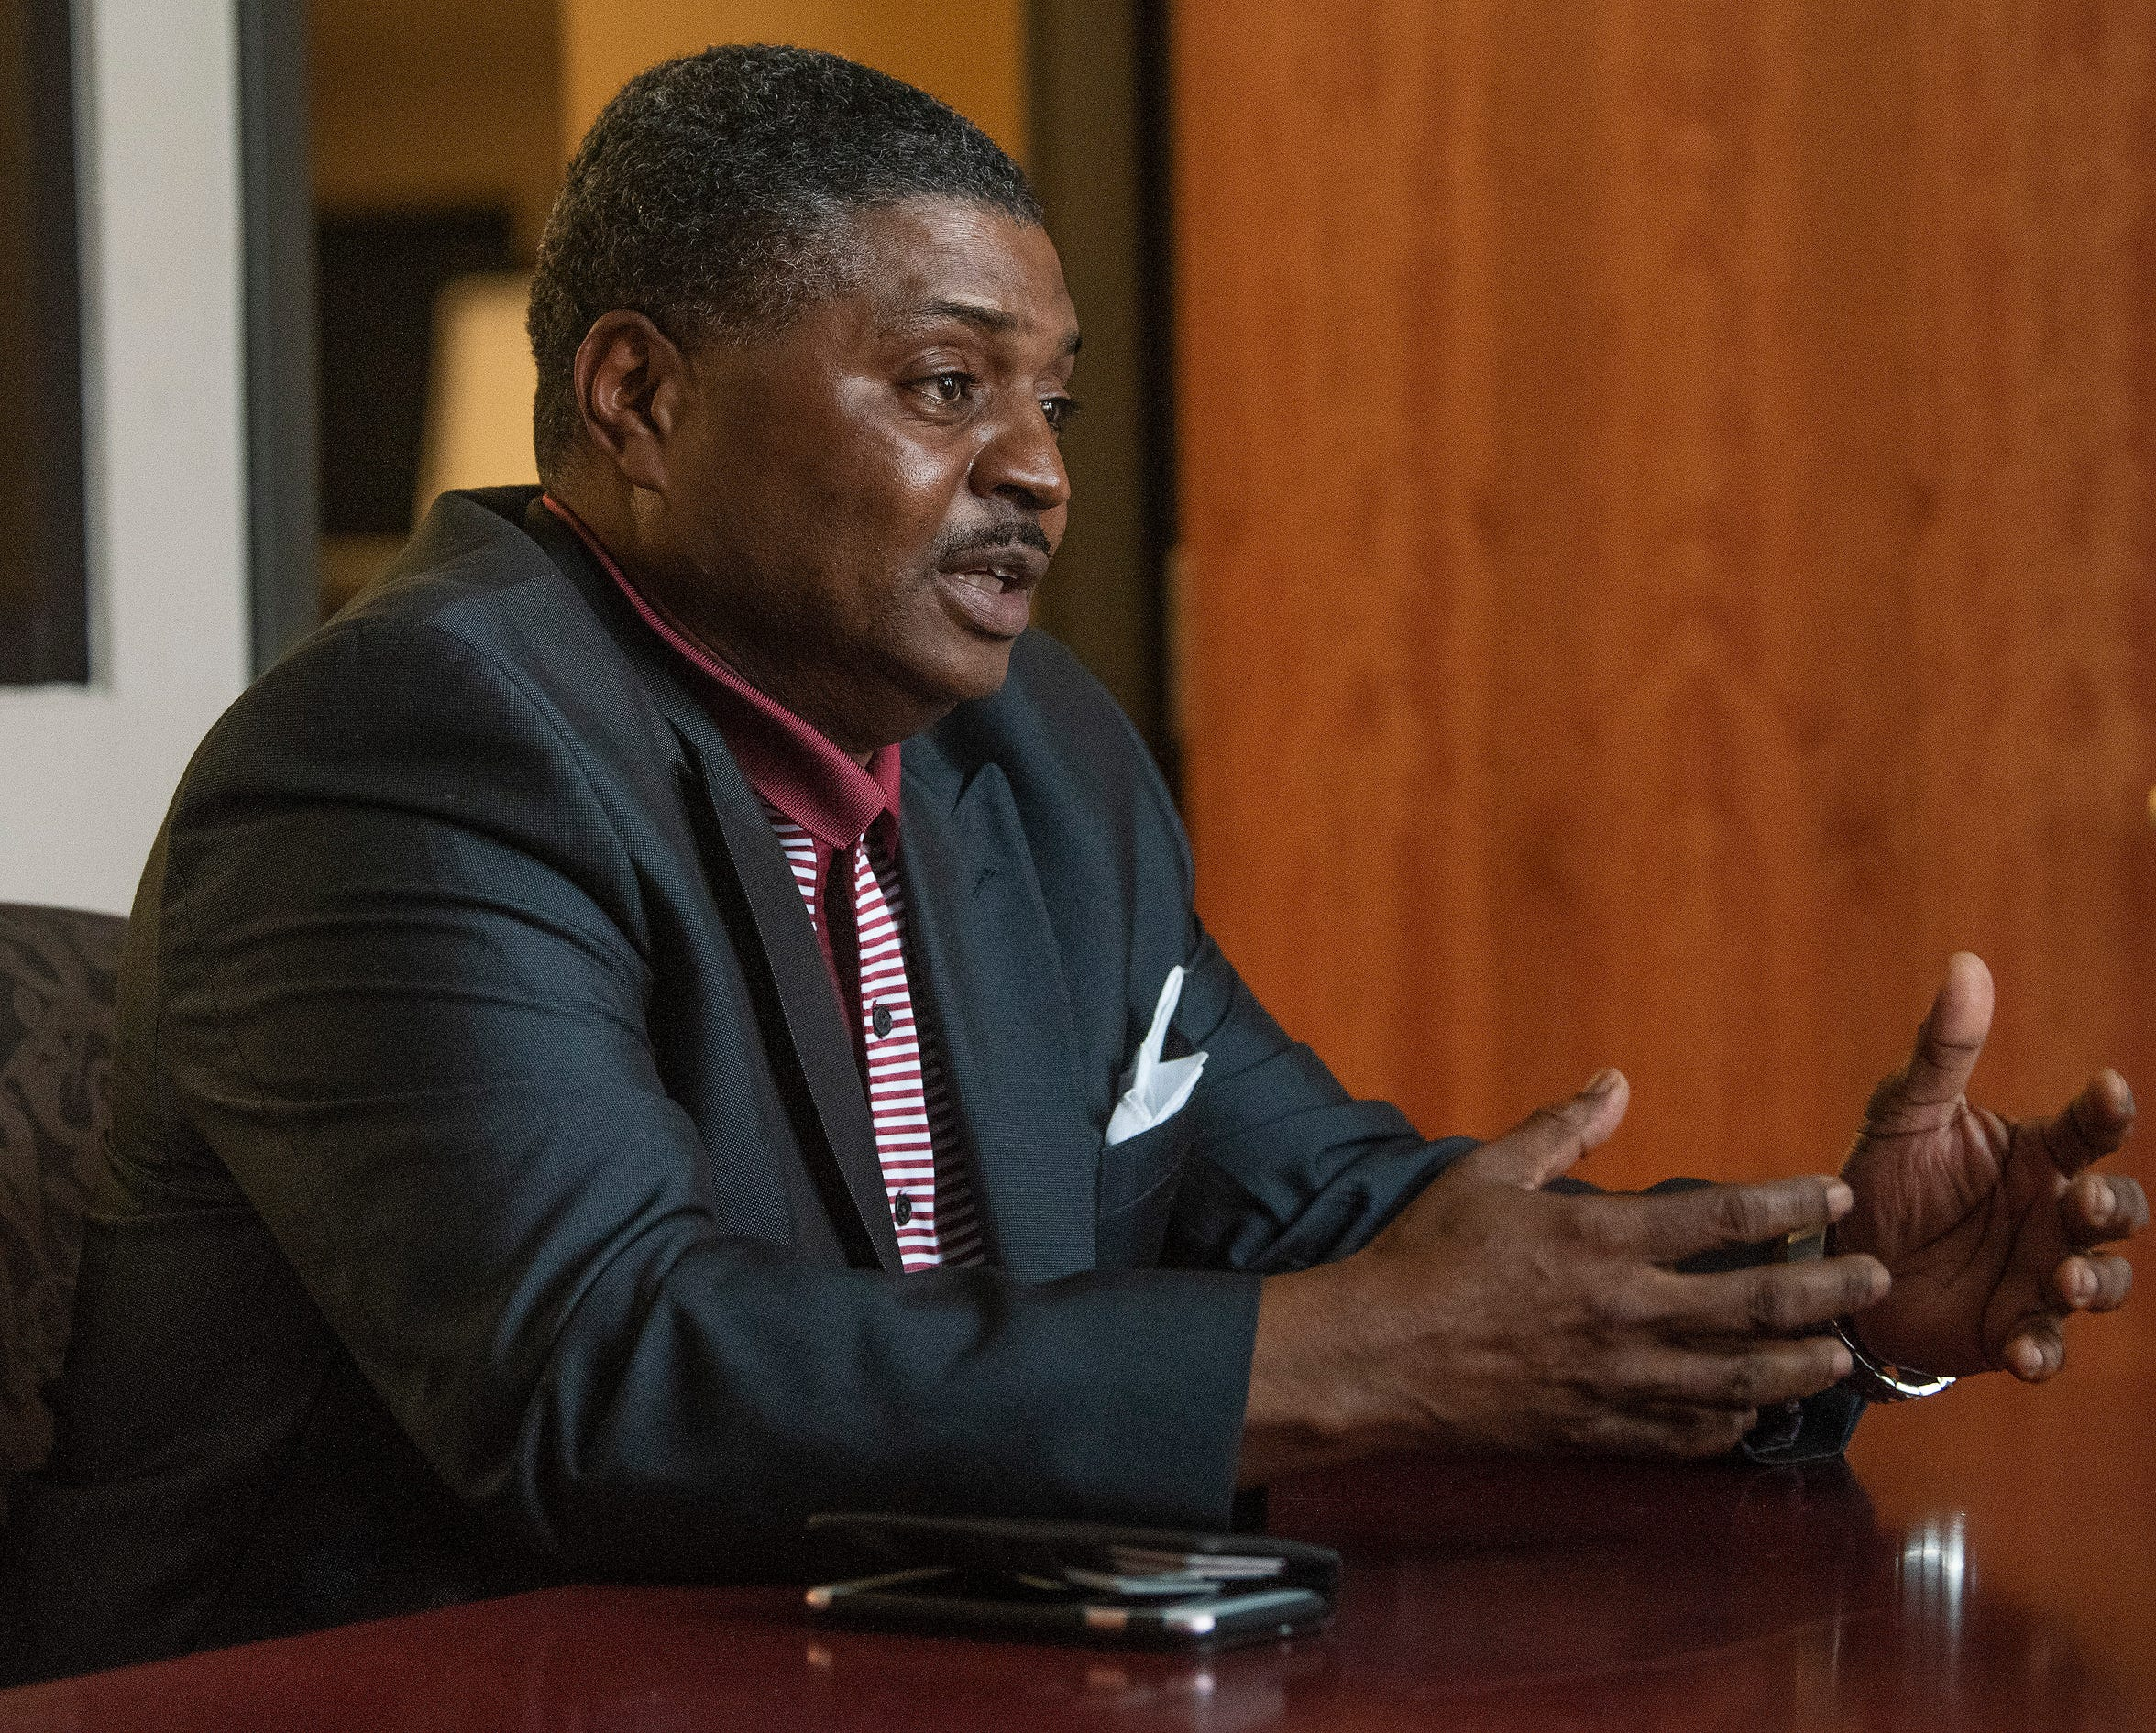 C.C. Calhoun who is running for City Council in Montgomery, Ala., is shown on Thursday March 14, 2019.